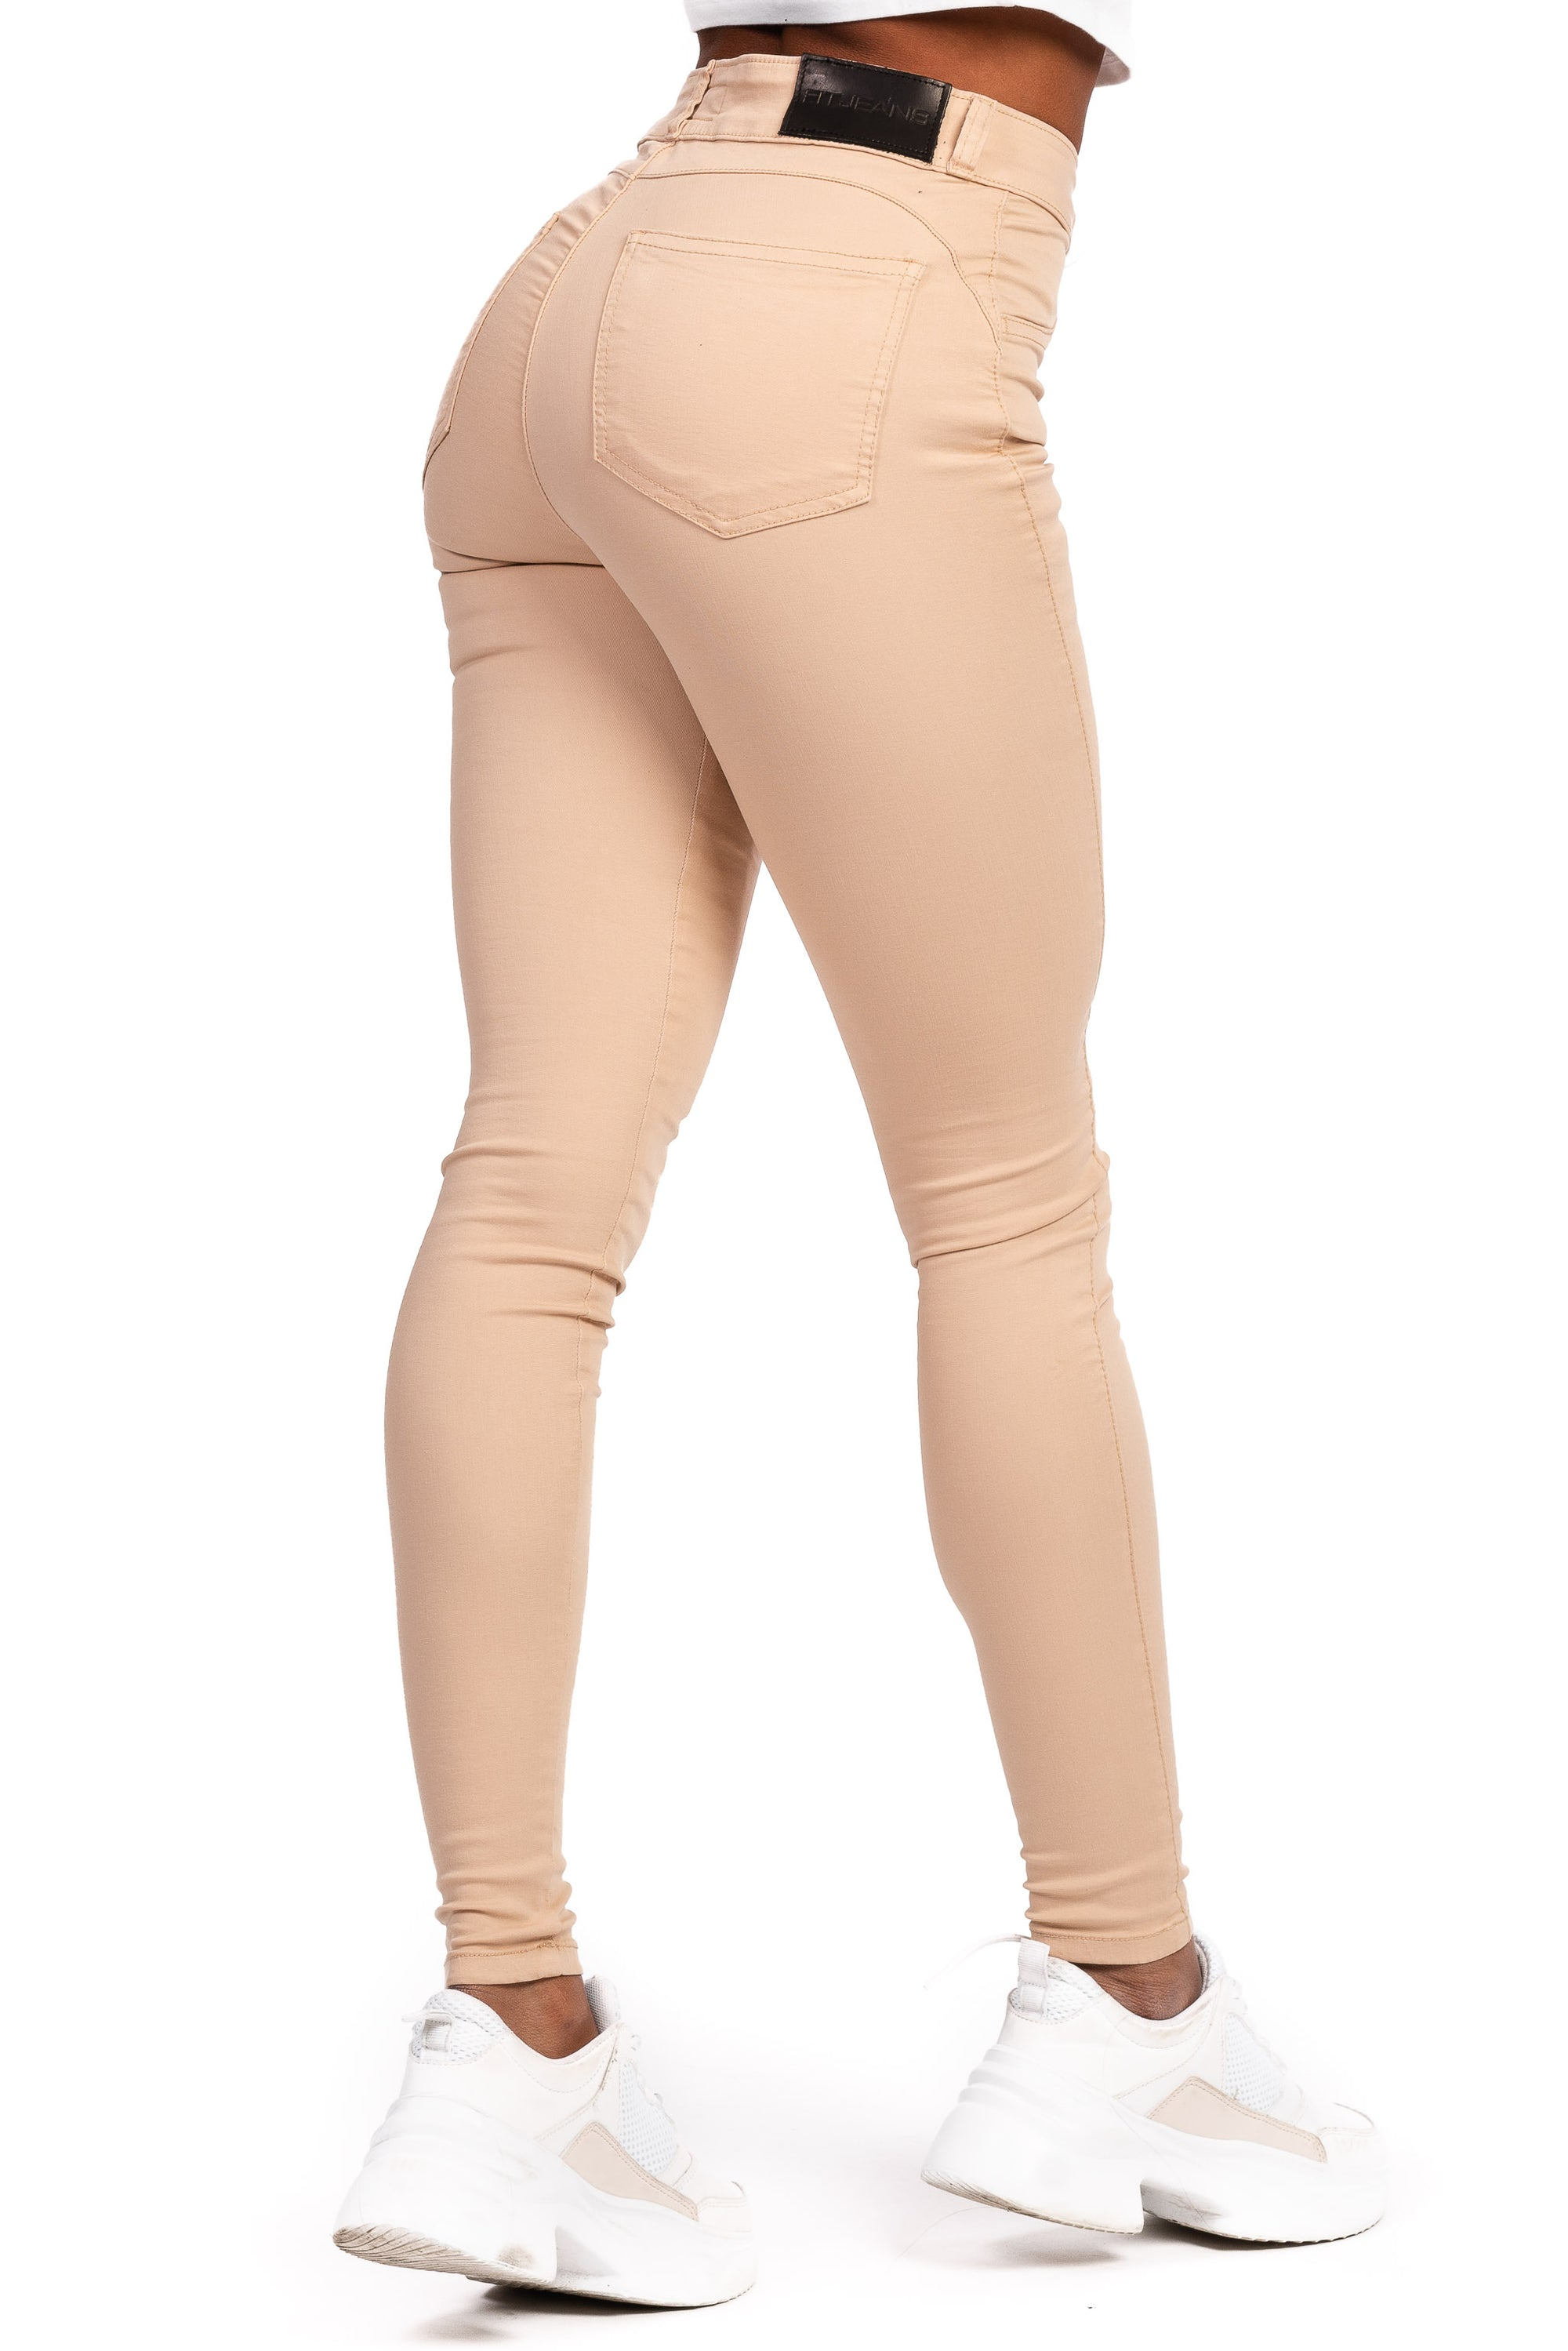 Womens Mid Waisted Stretch Chinos - Beige